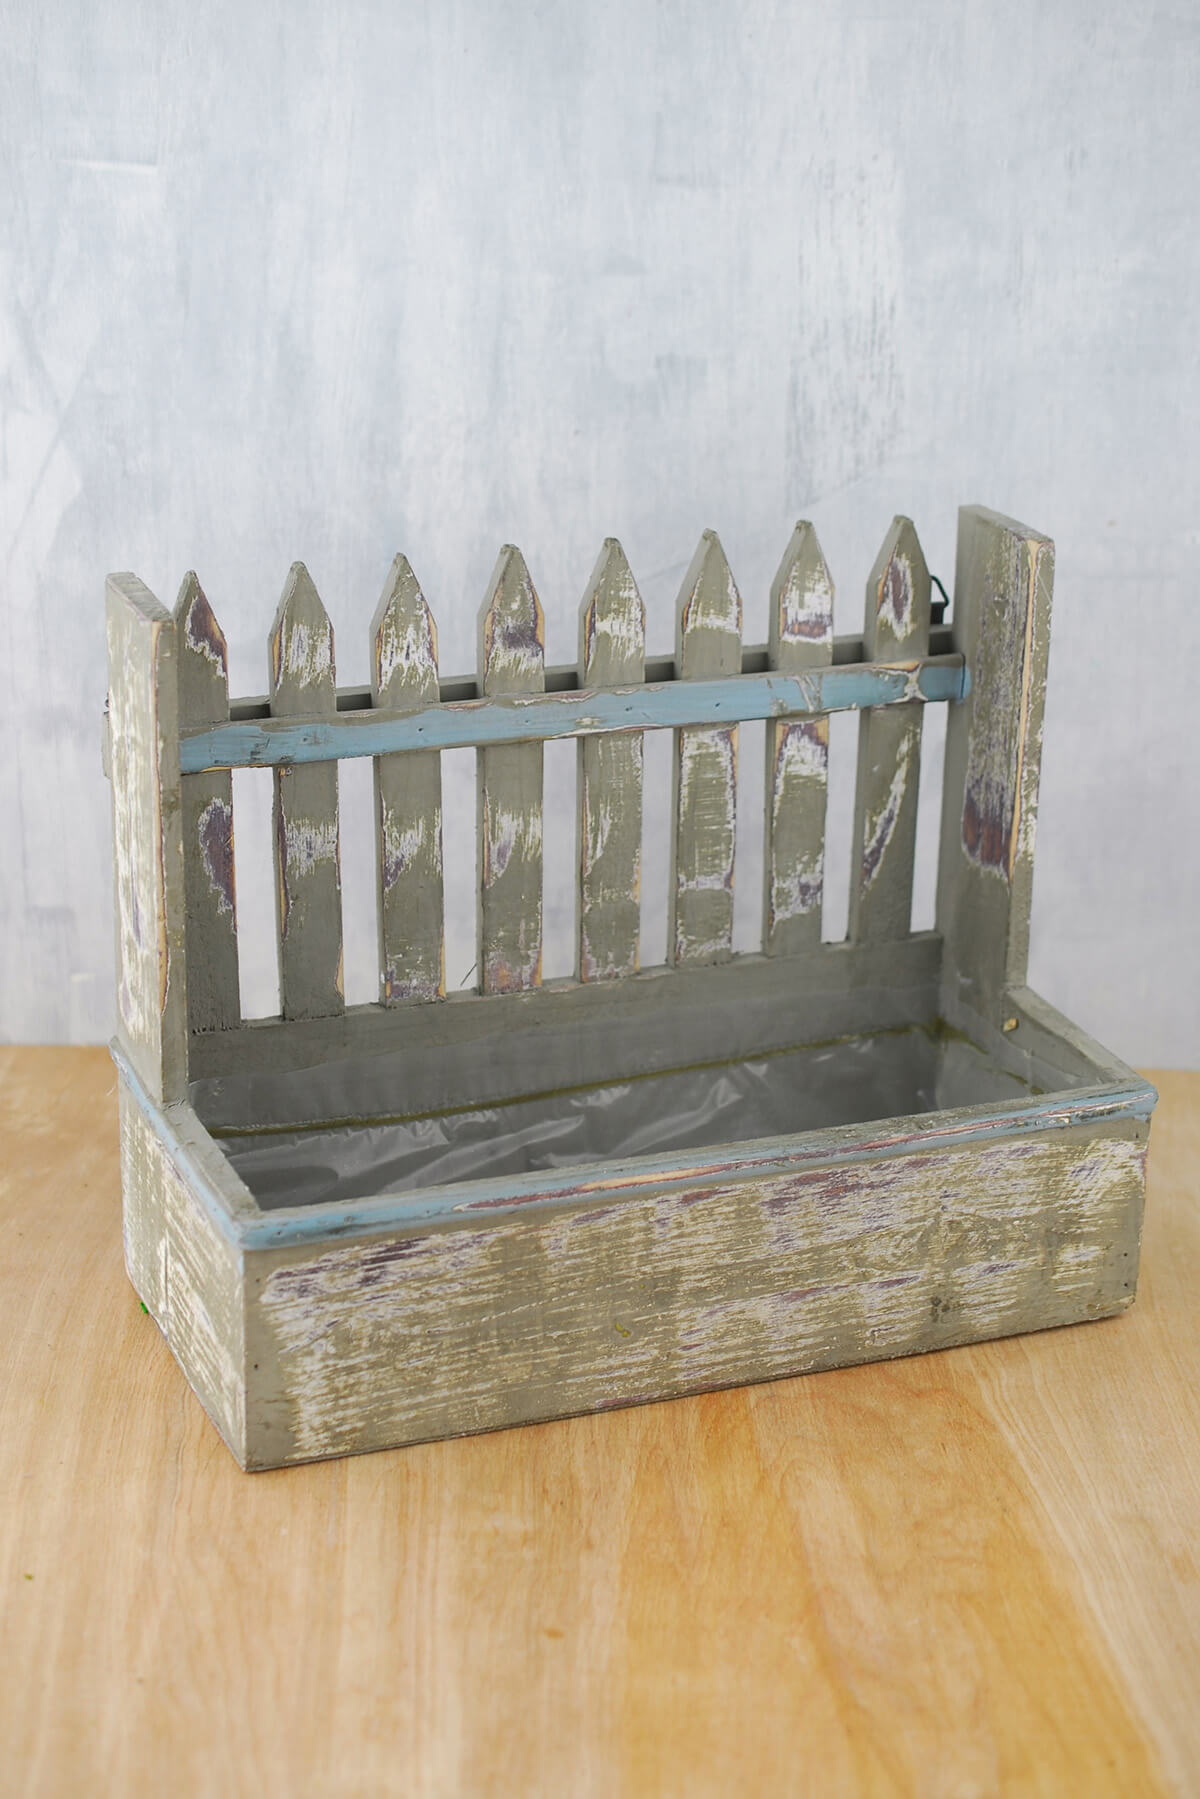 Wood Picket Fence 9x11 Planter Box